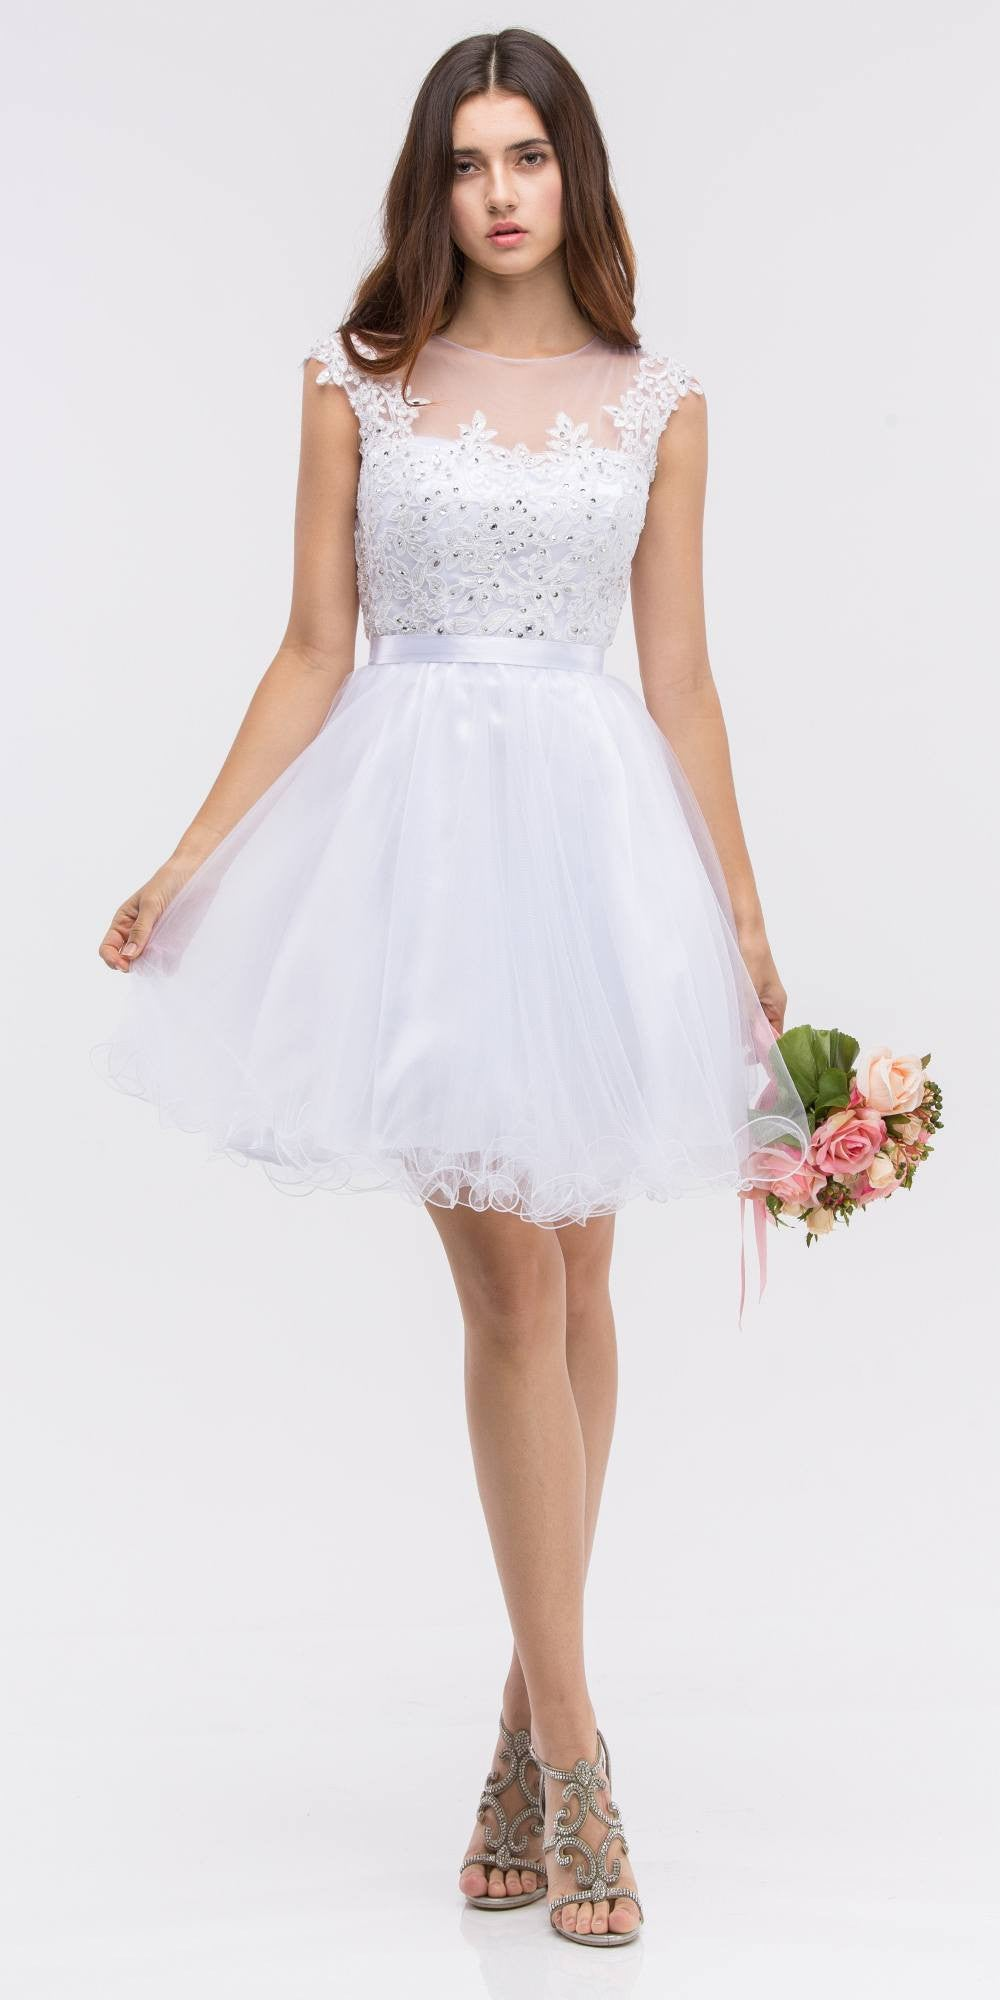 White Cap Sleeve Lace Applique Bodice Homecoming Dress Short